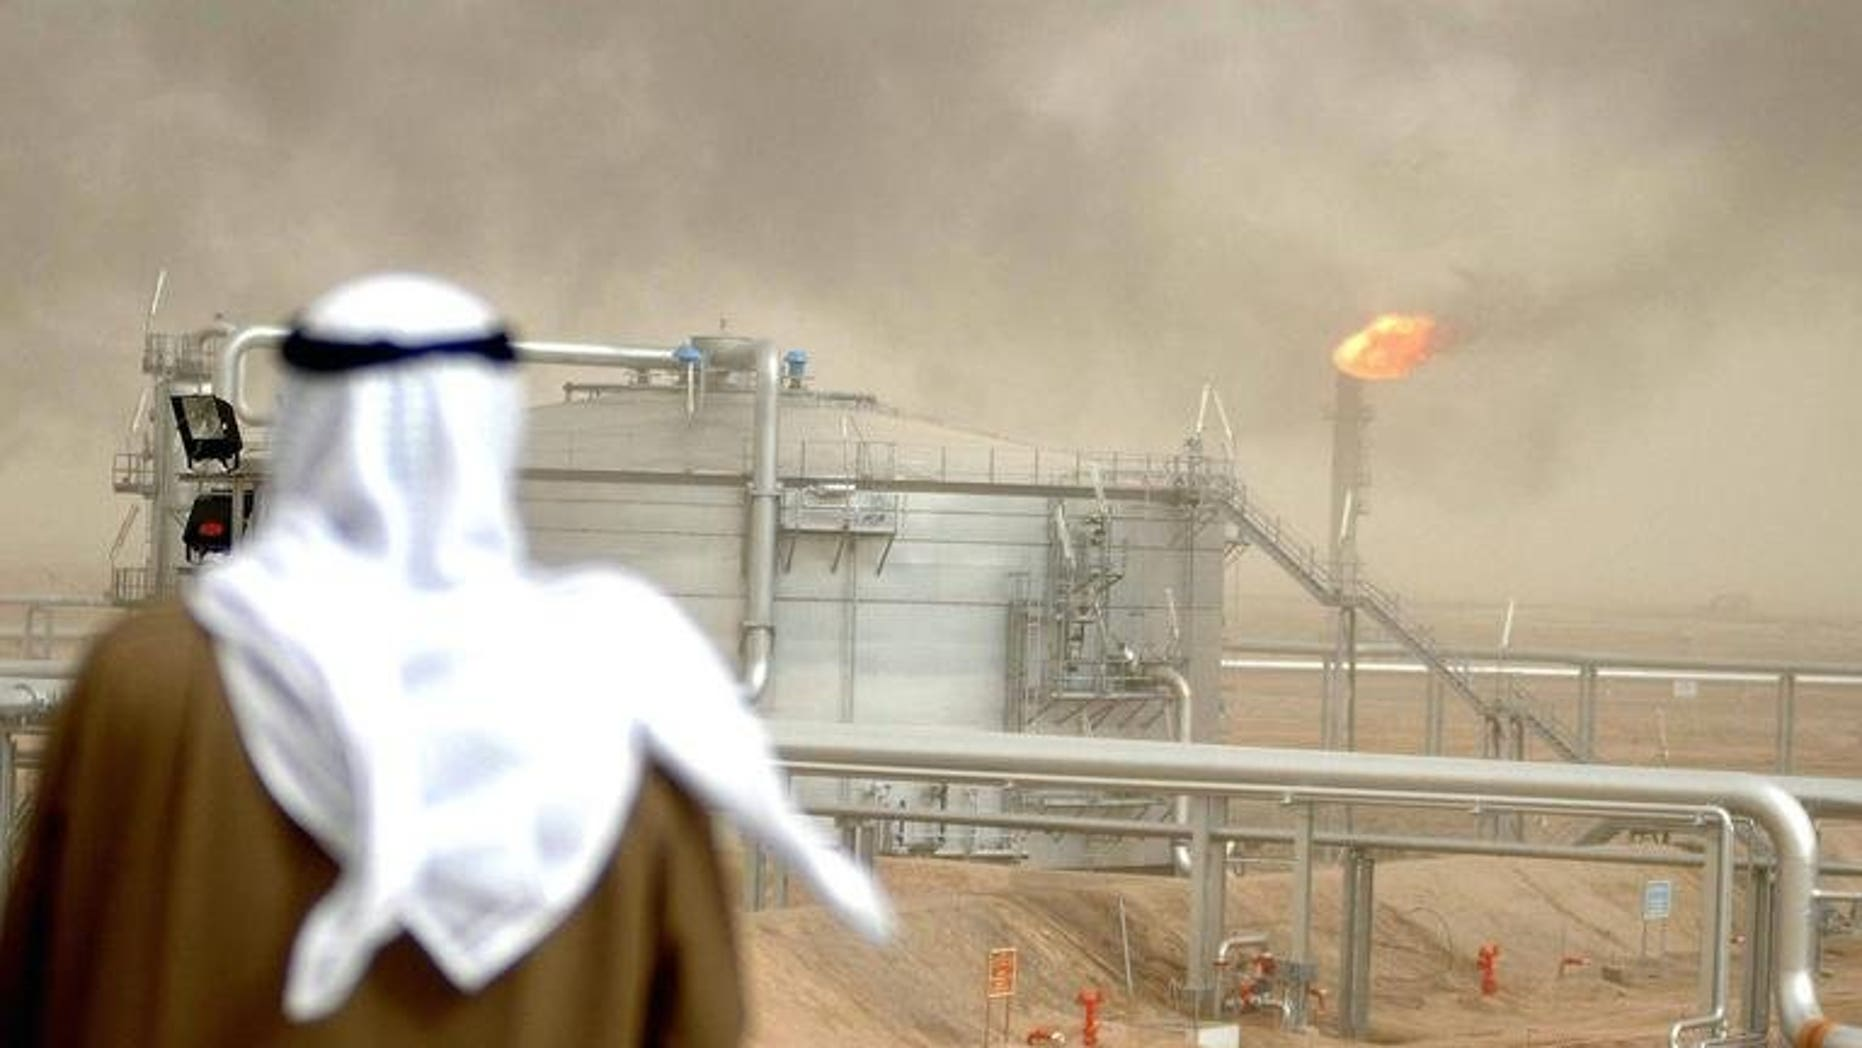 An employee of the Kuwait Oil Company (KOC) looks at the al-Rawdatain refinery. Kuwait has delivered crude oil and diesel worth $200 million to Egypt as part of a $4-billion aid package to bolster its faltering economy, according to local newspaper reports.